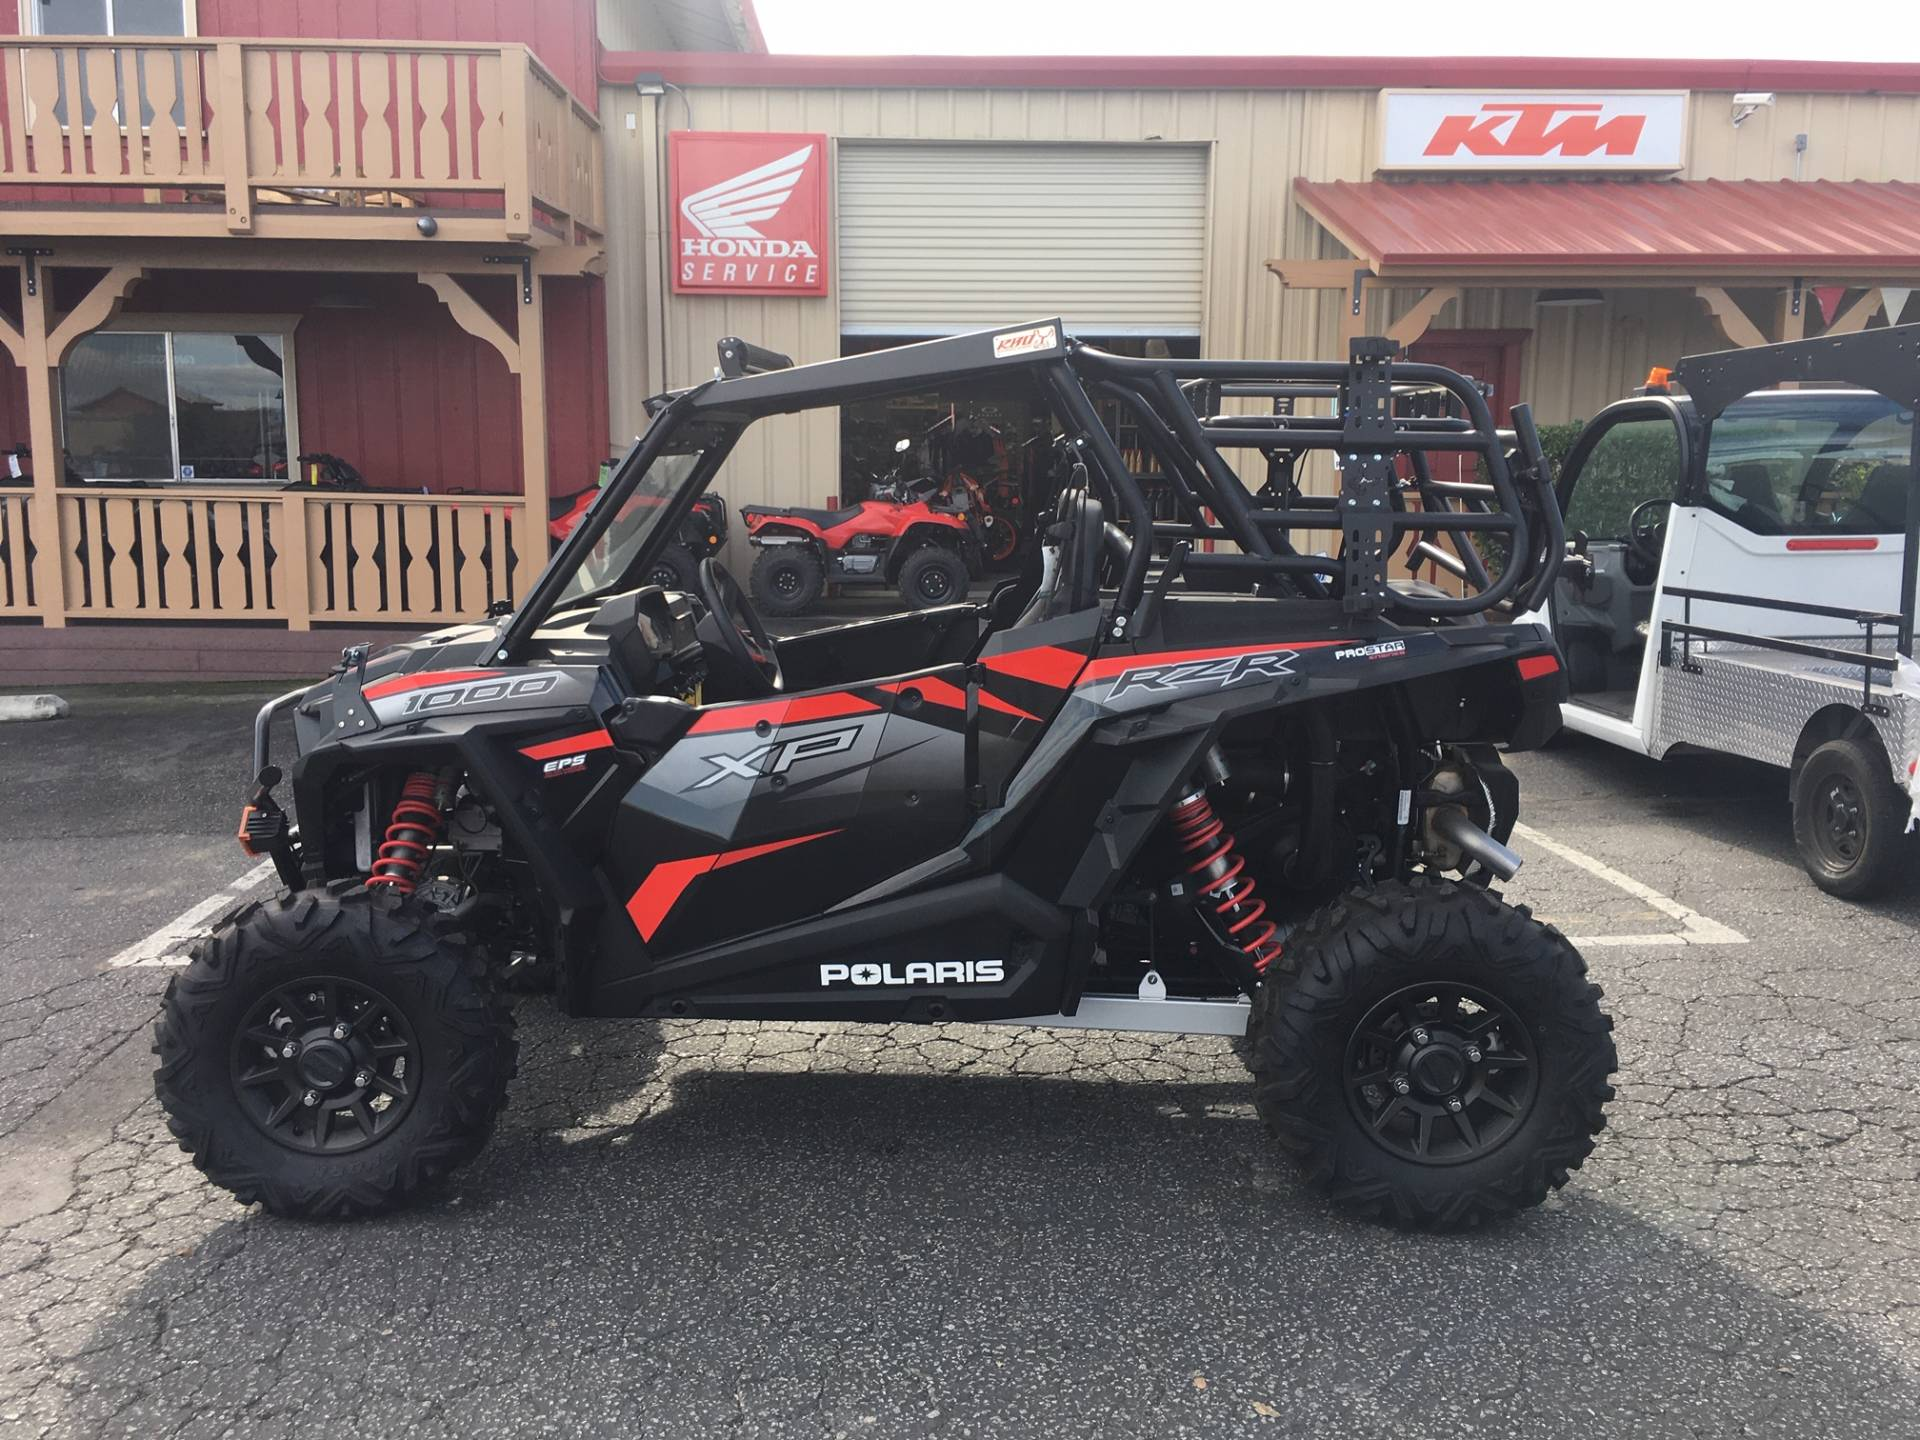 2019 Polaris RZR XP 1000 in Paso Robles, California - Photo 1